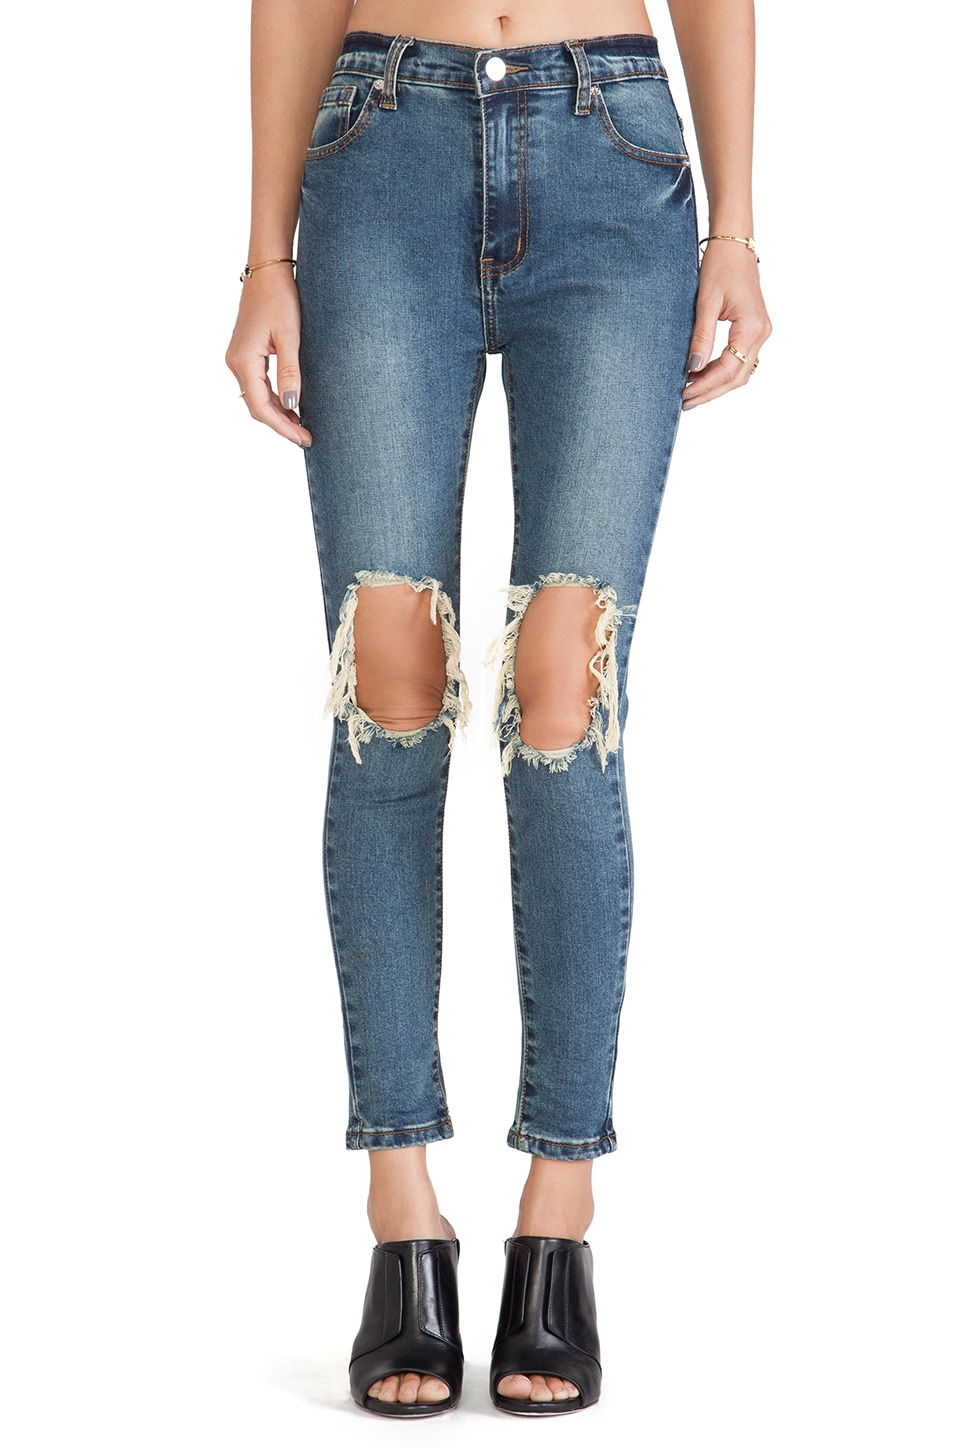 UNIF Peach Pit Skinnies in Blue